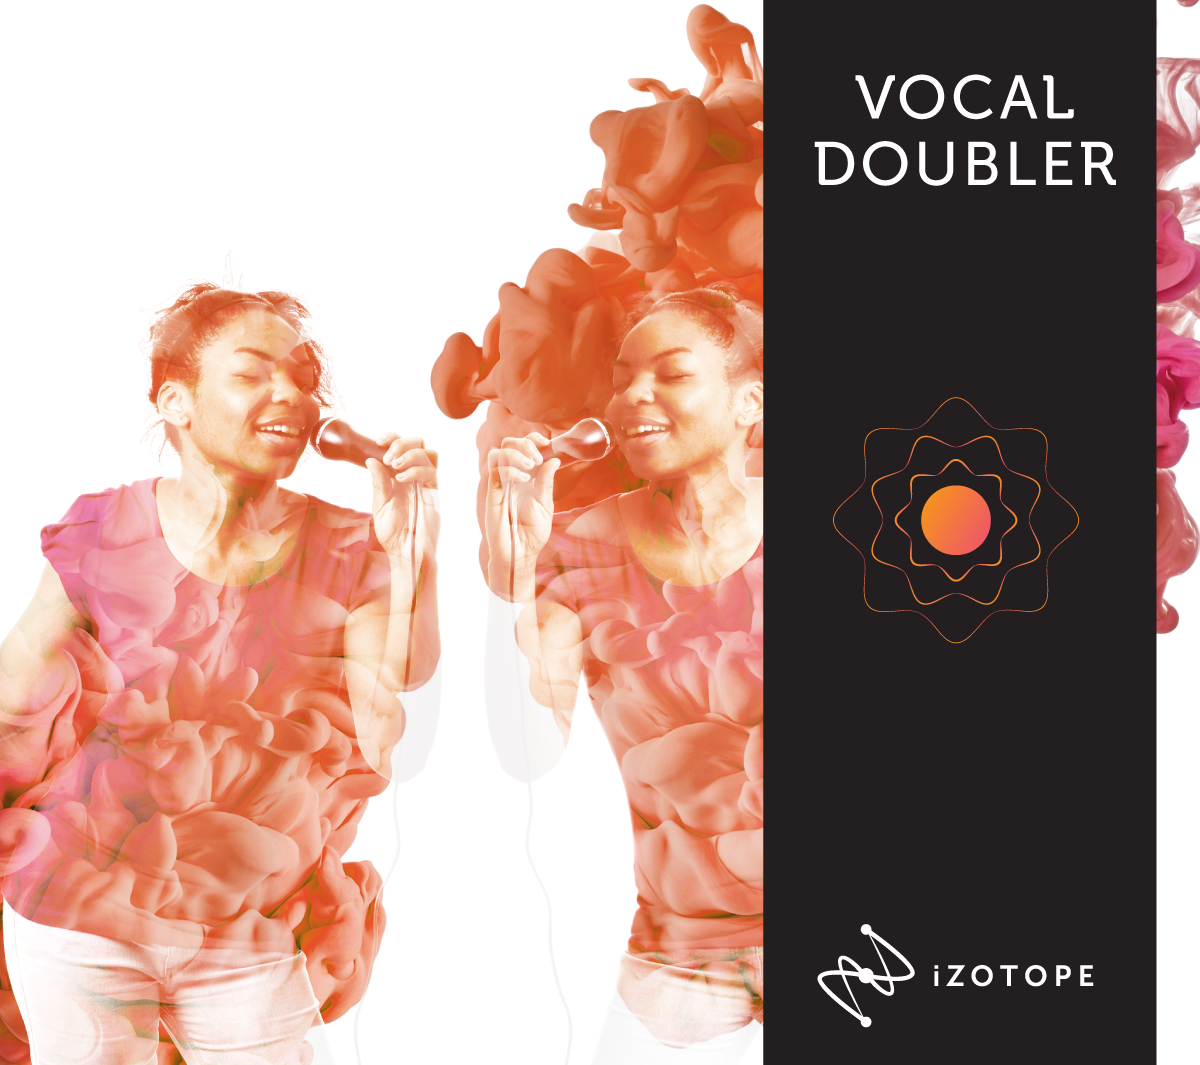 iZotope Vocal Doubler | AudioDeluxe